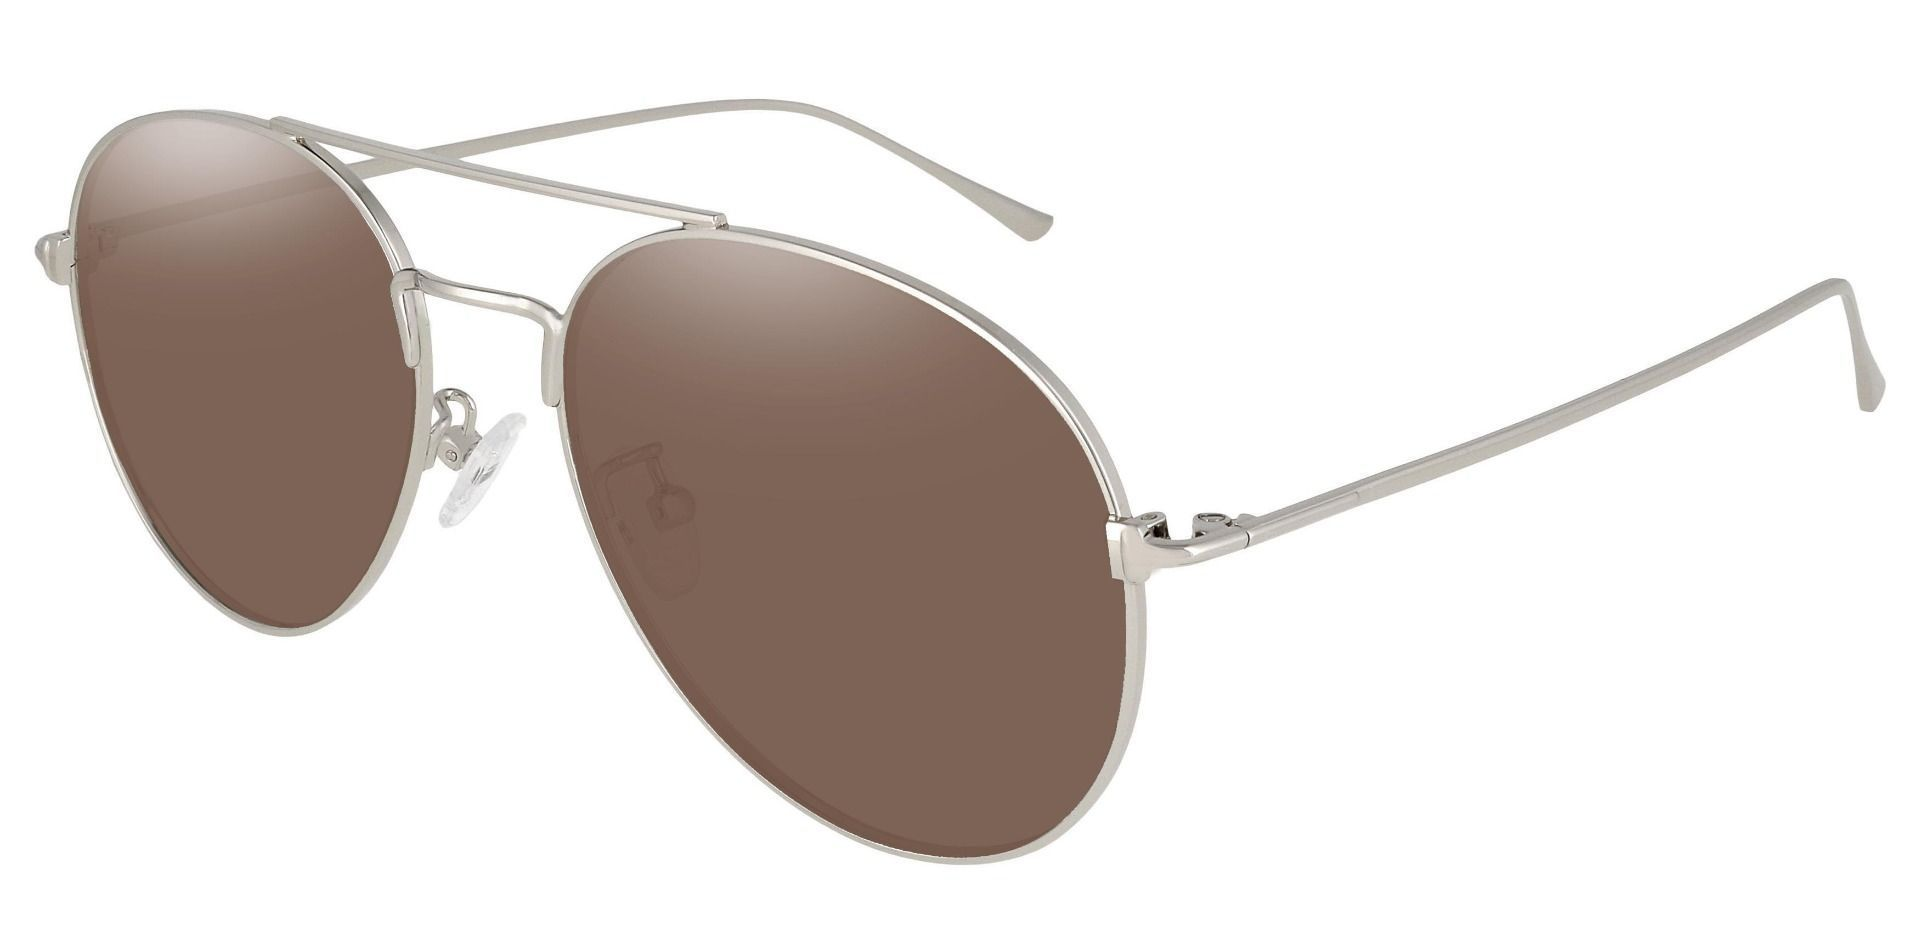 Canon Aviator Reading Sunglasses - Silver Frame With Brown Lenses